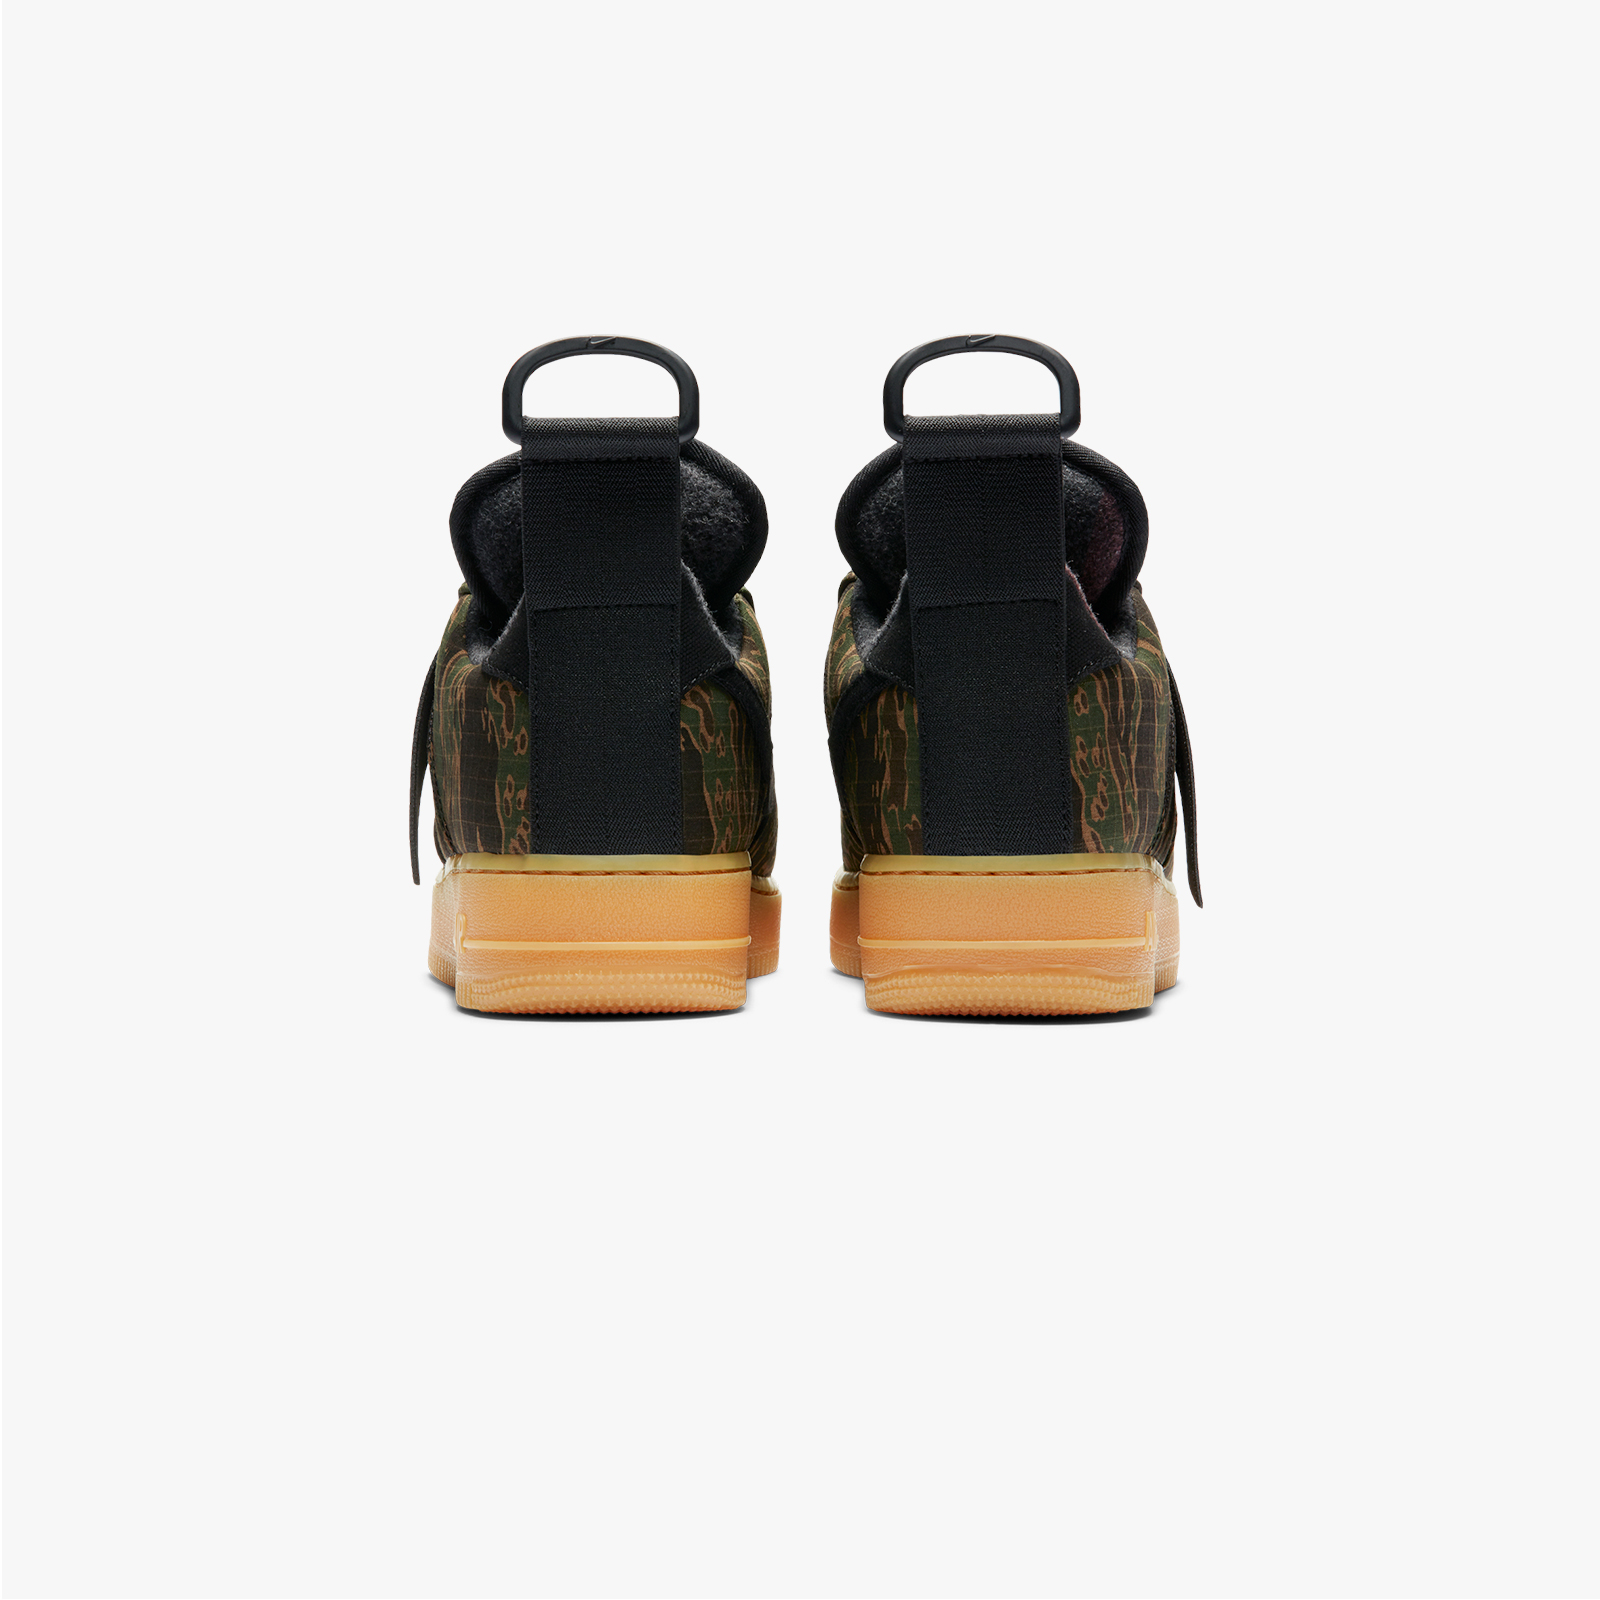 cd42c1e21bc66 Nike Sportswear Air Force 1 Utility Low Premium x Carhartt WIP - 8. Stäng